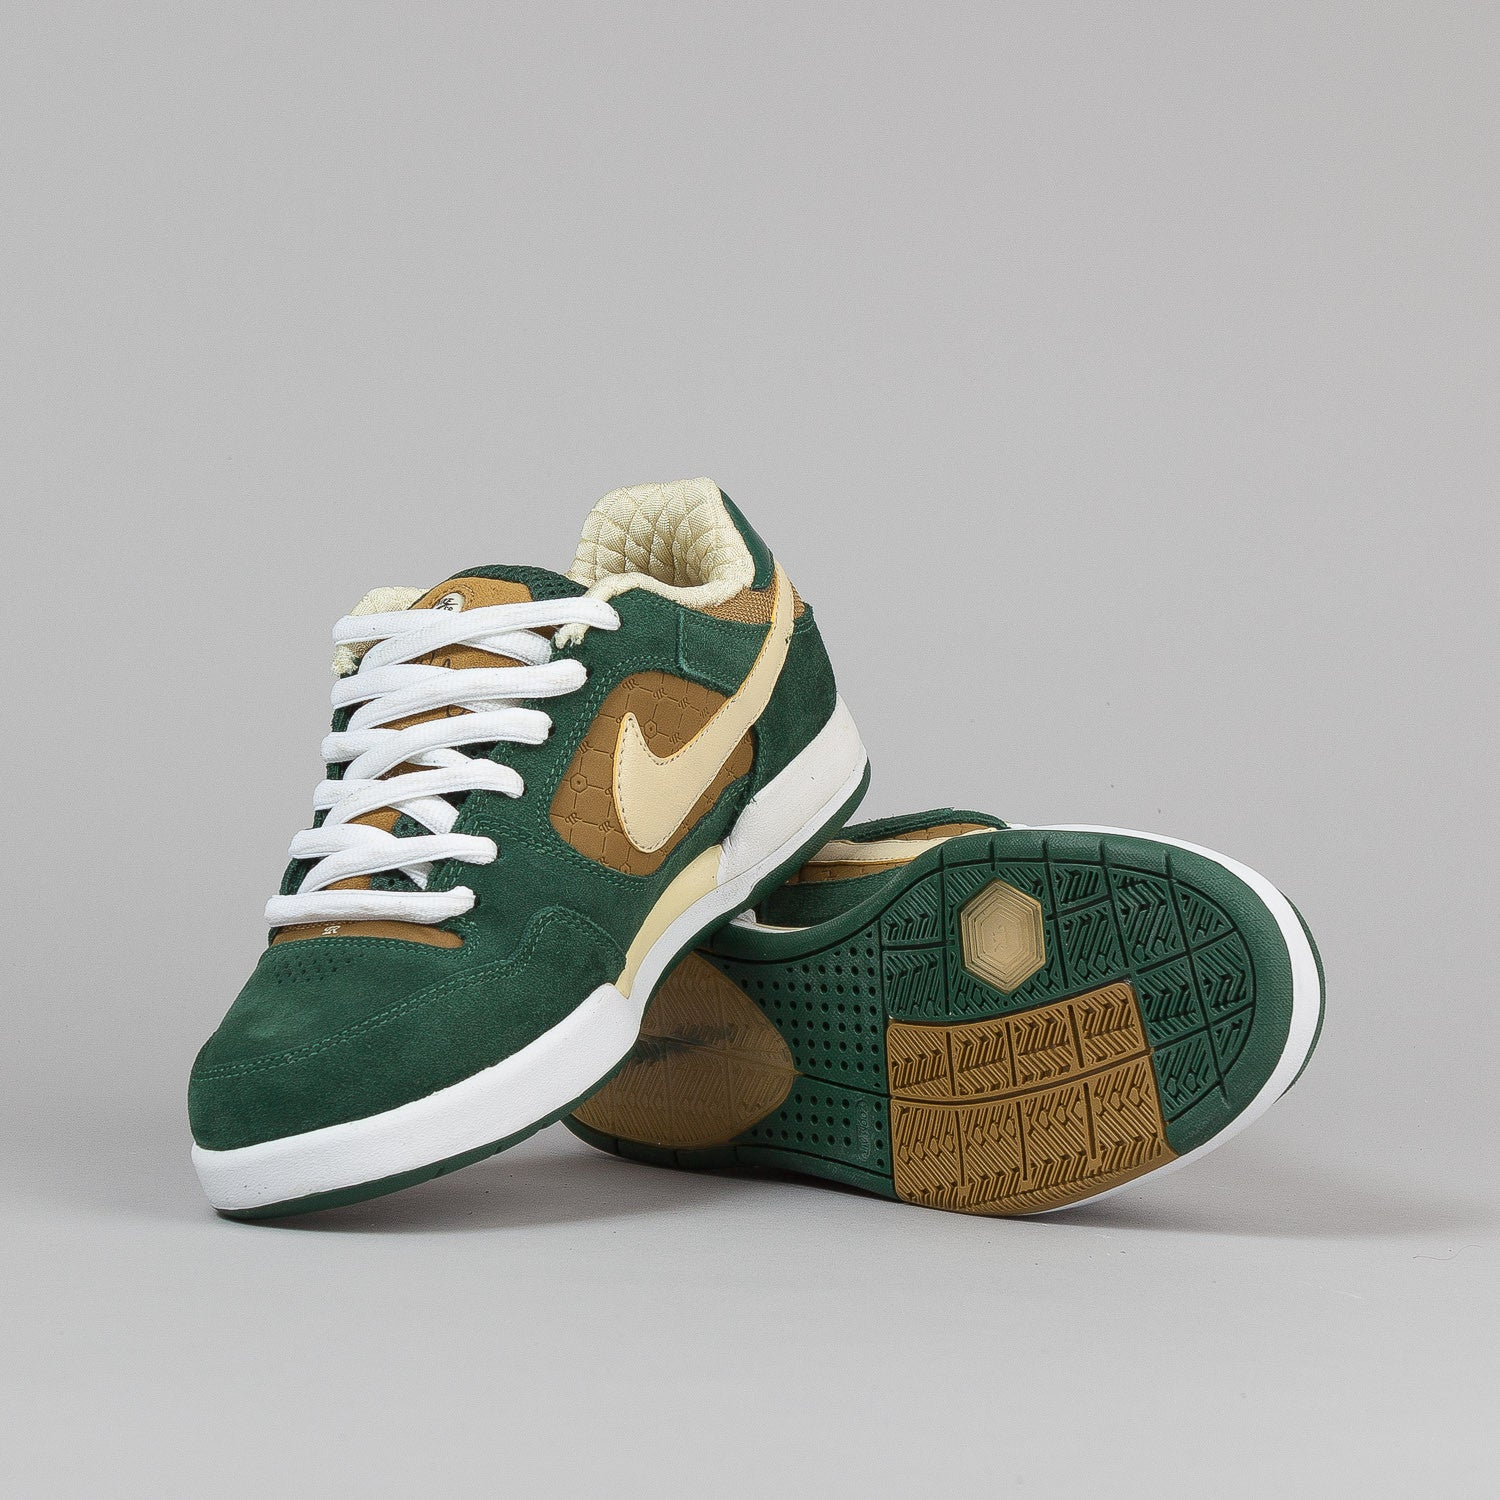 Nike SB Paul Rodriguez 2 Shoes - Black Forest / Lemon Drop